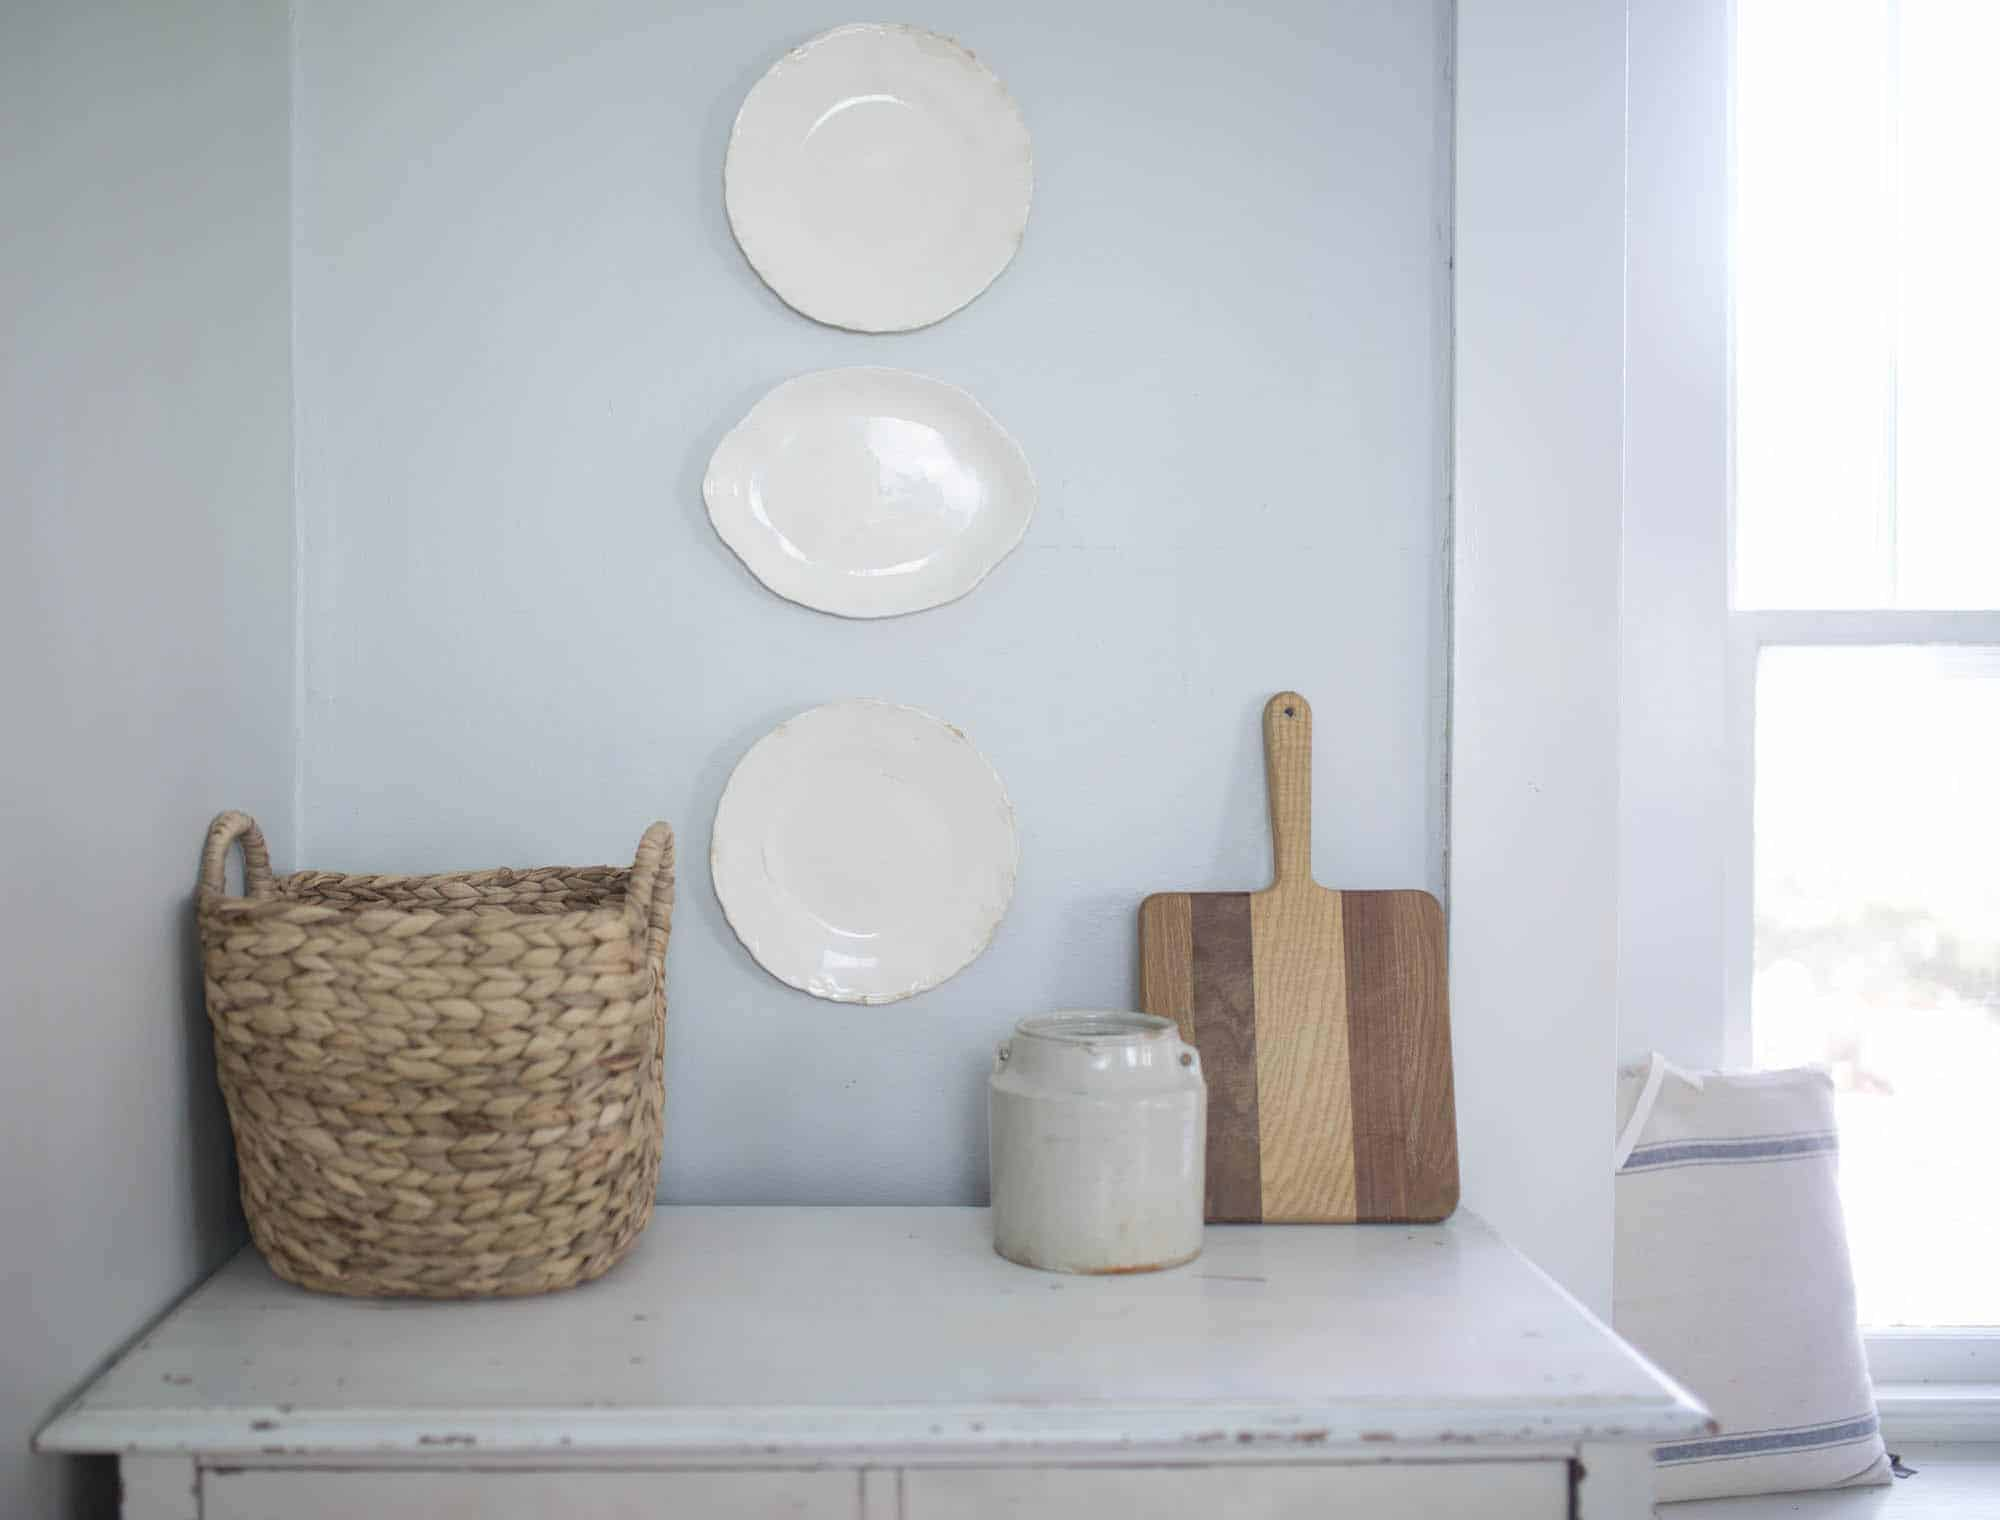 Learn How to Hang Plates on a Wall with Adhesive Plate Discs